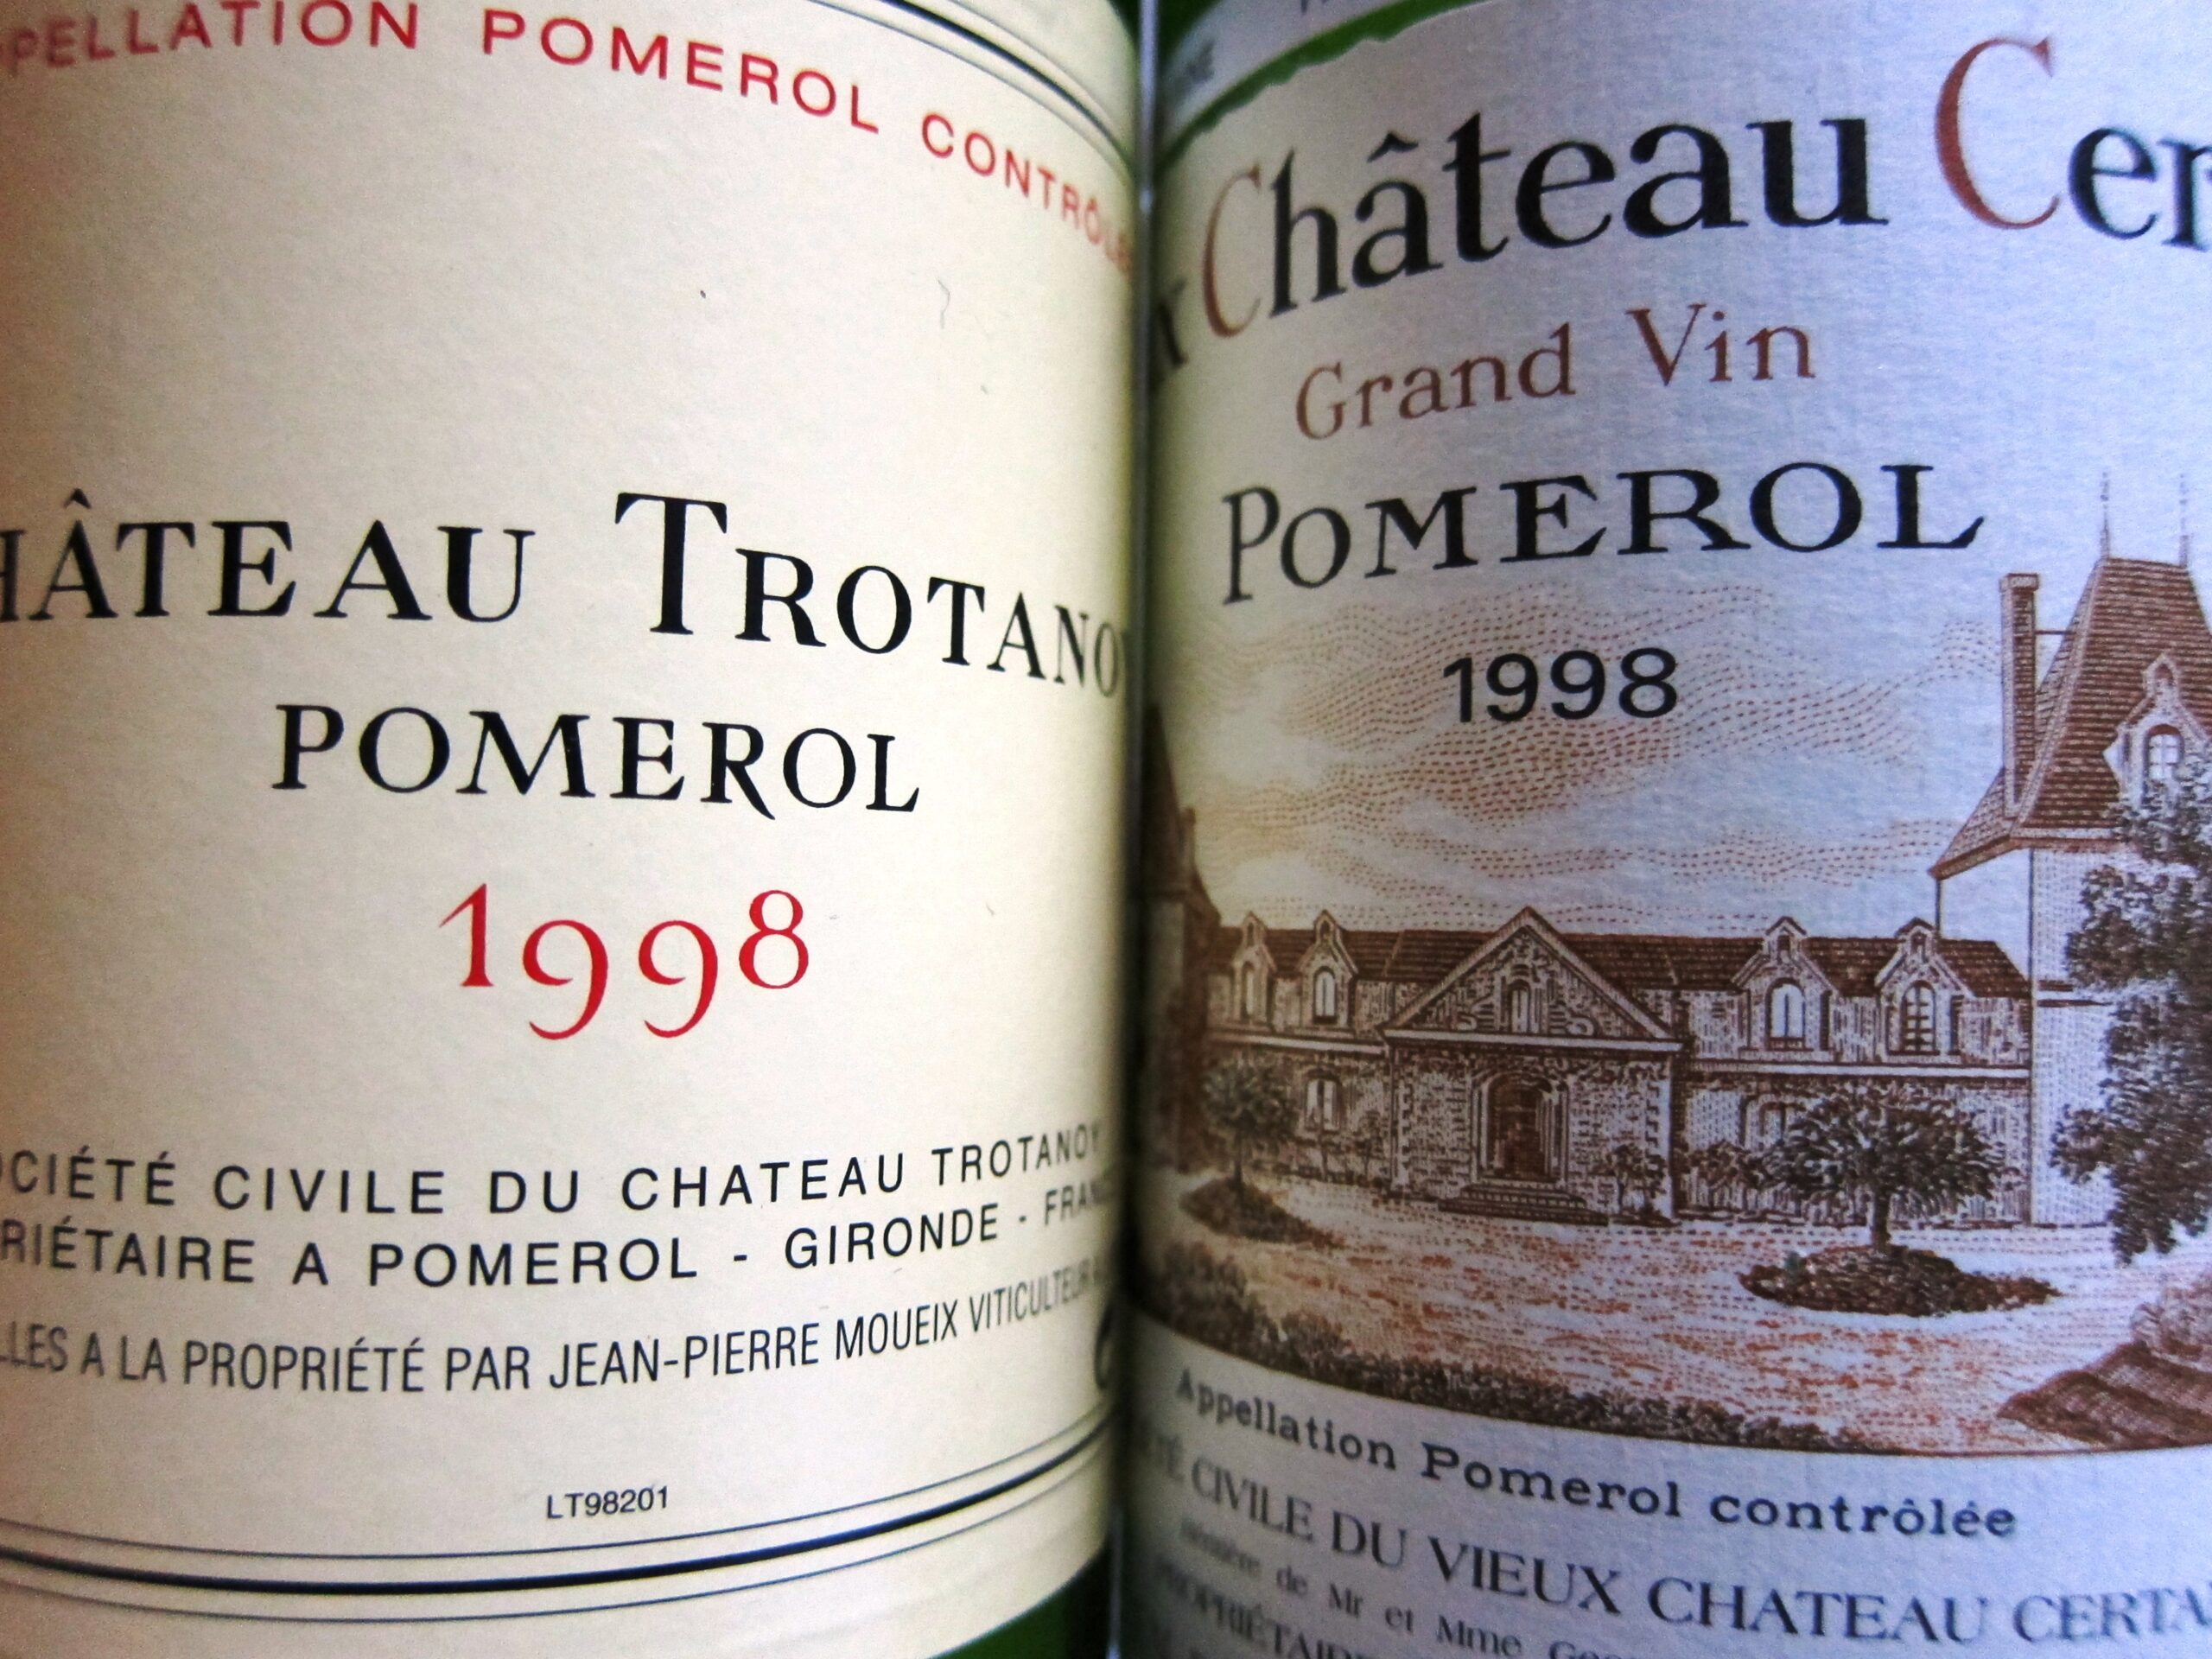 1998 Trotanoy, 1998 Vieux Chateau Certan Tasted, Reviewed, Compared